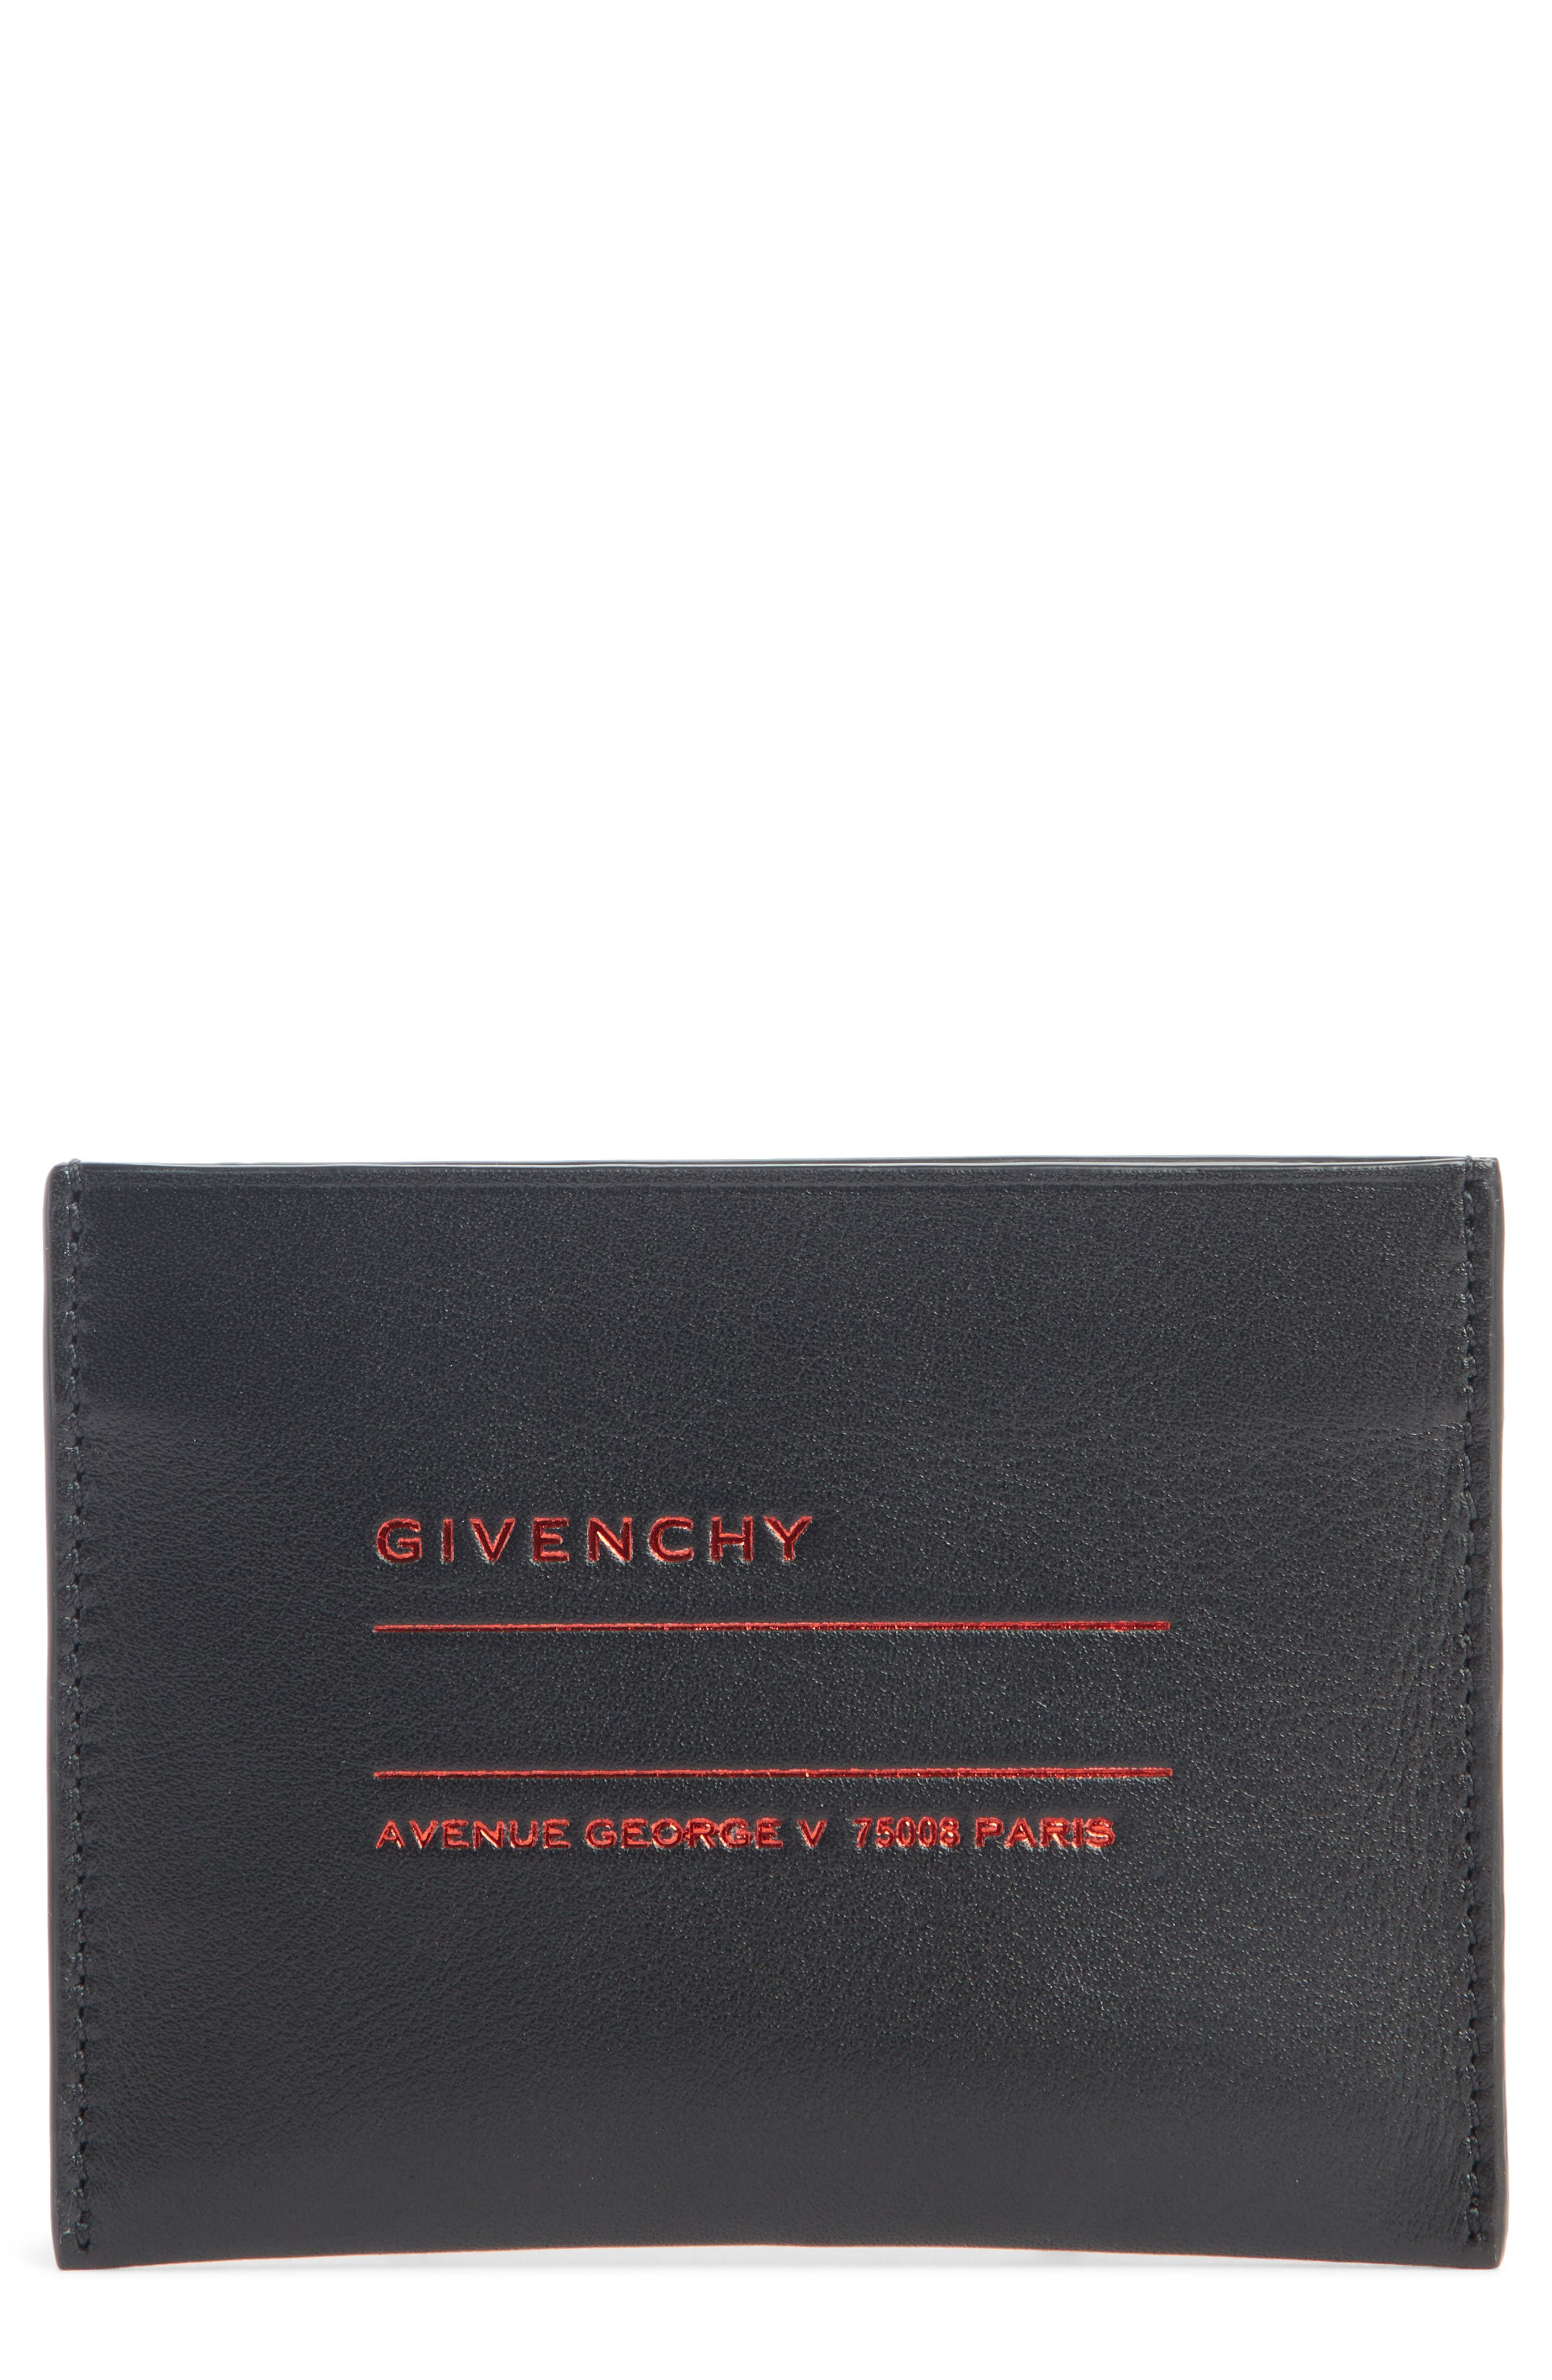 Address Leather Card Case,                         Main,                         color, BLACK